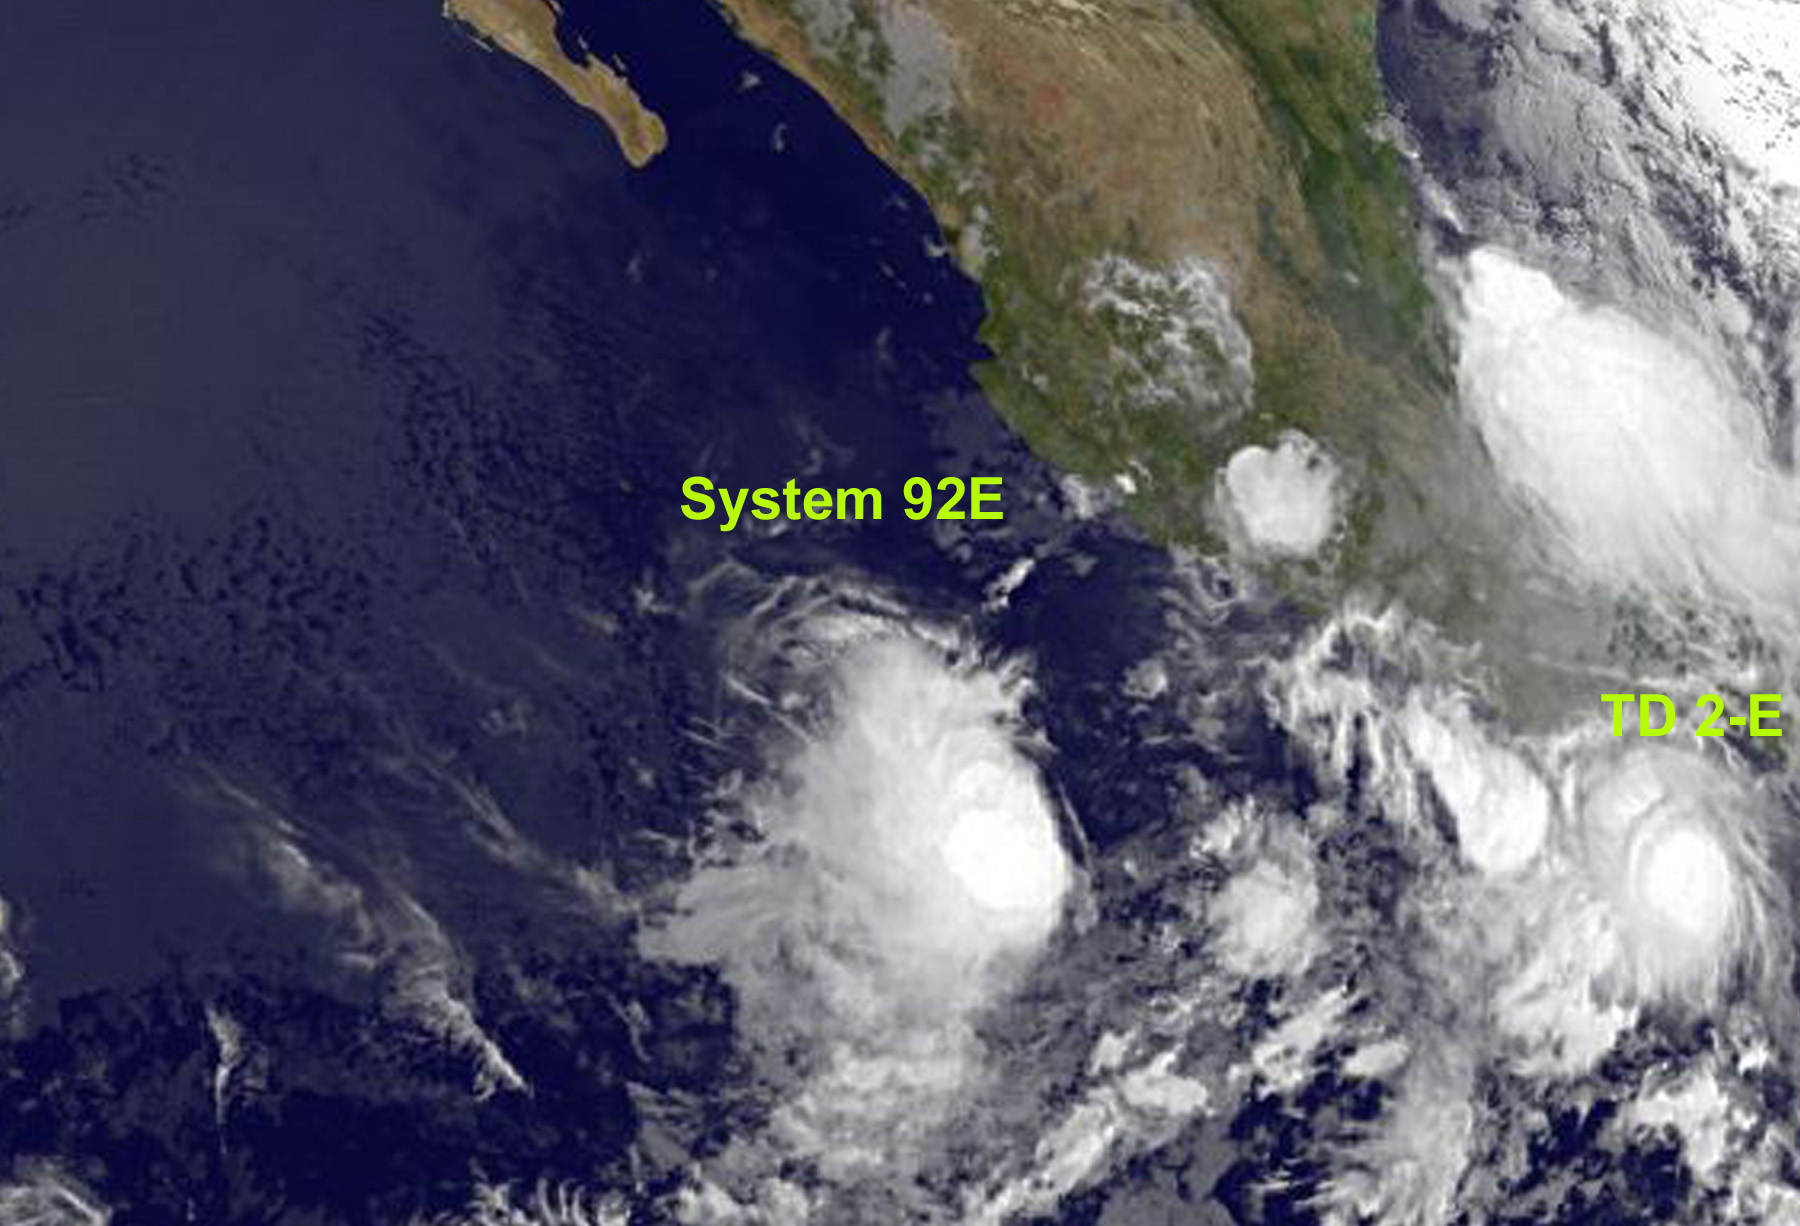 The second tropical depression of the Eastern Pacific Ocean hurricane season formed close to the western Mexican coast this morning, and the third tropical depression may develop in the next day or two.